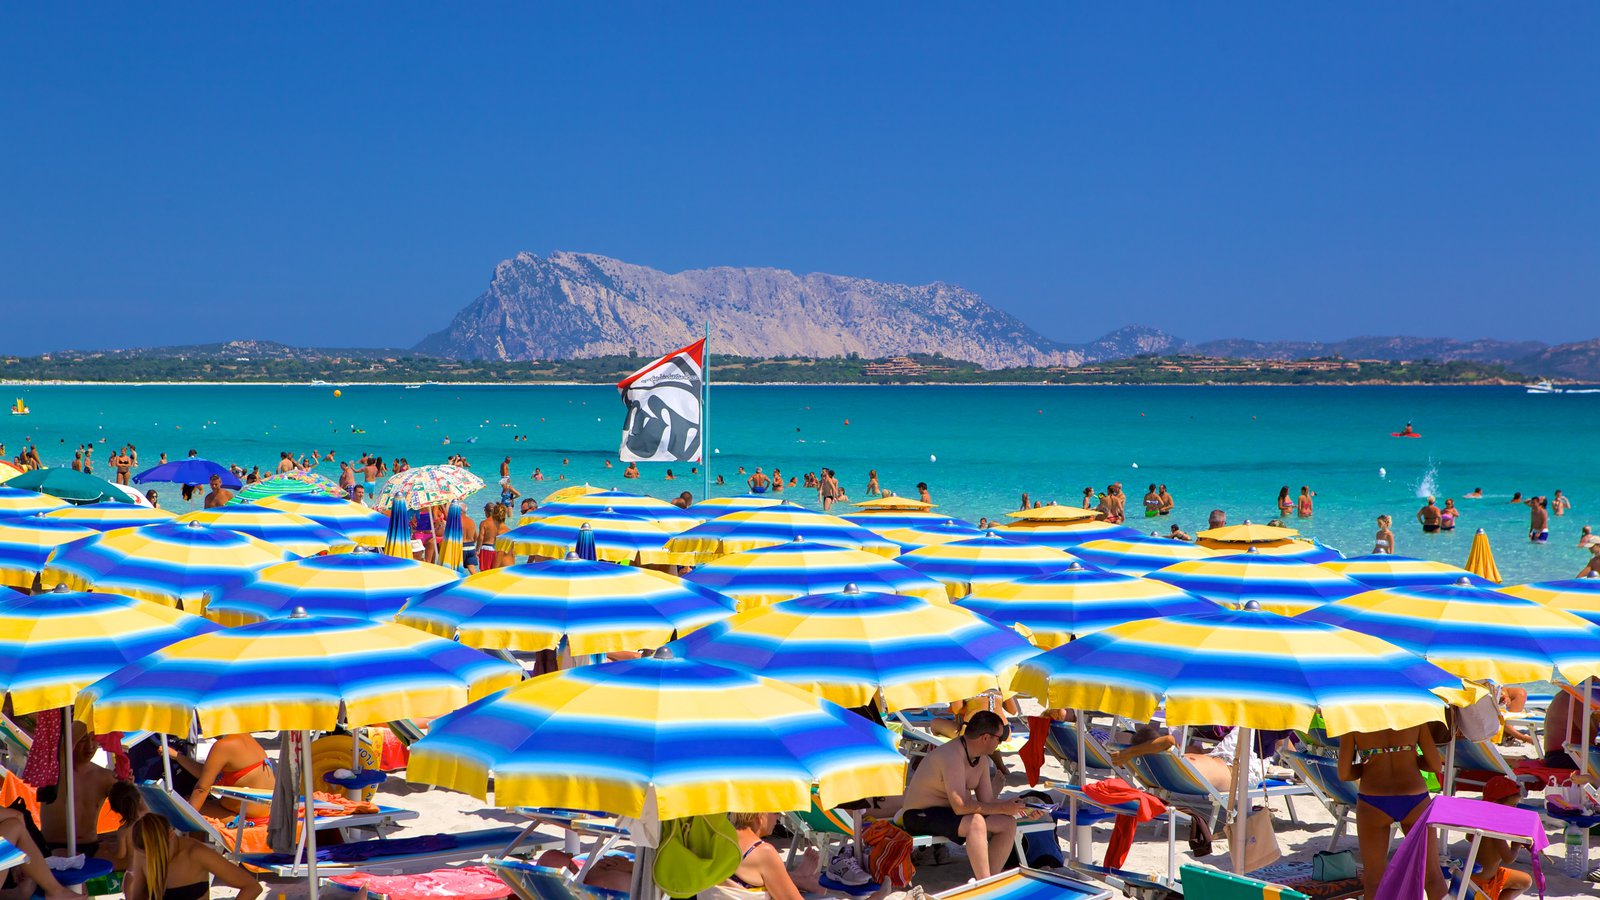 San Teodoro featuring a sandy beach and general coastal views as well as a large group of people